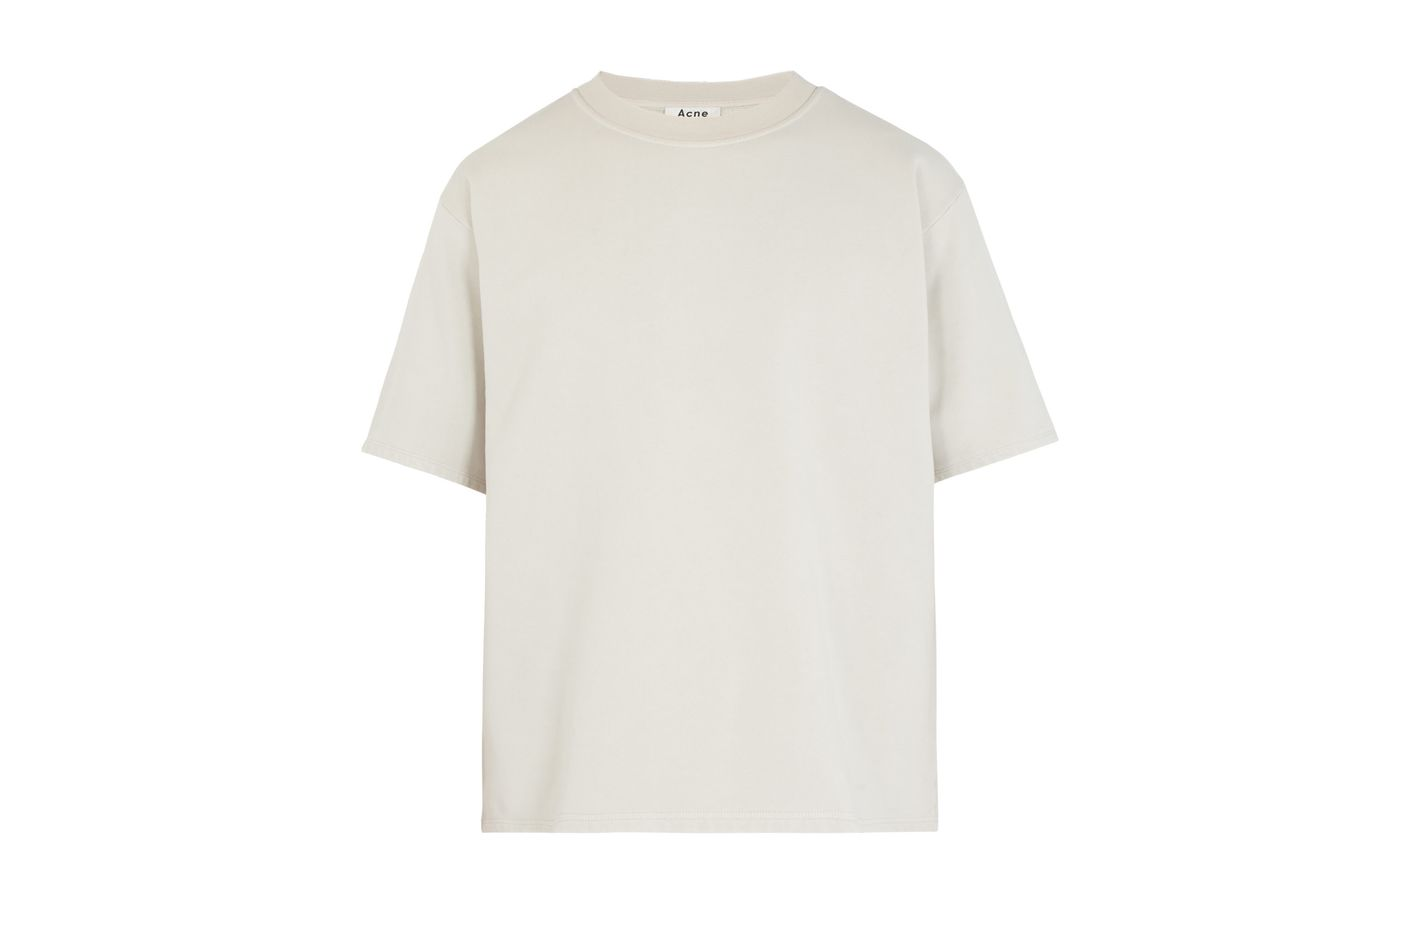 Acne Studios Finchley Fleece-Lined Short-Sleeved sweatshirt